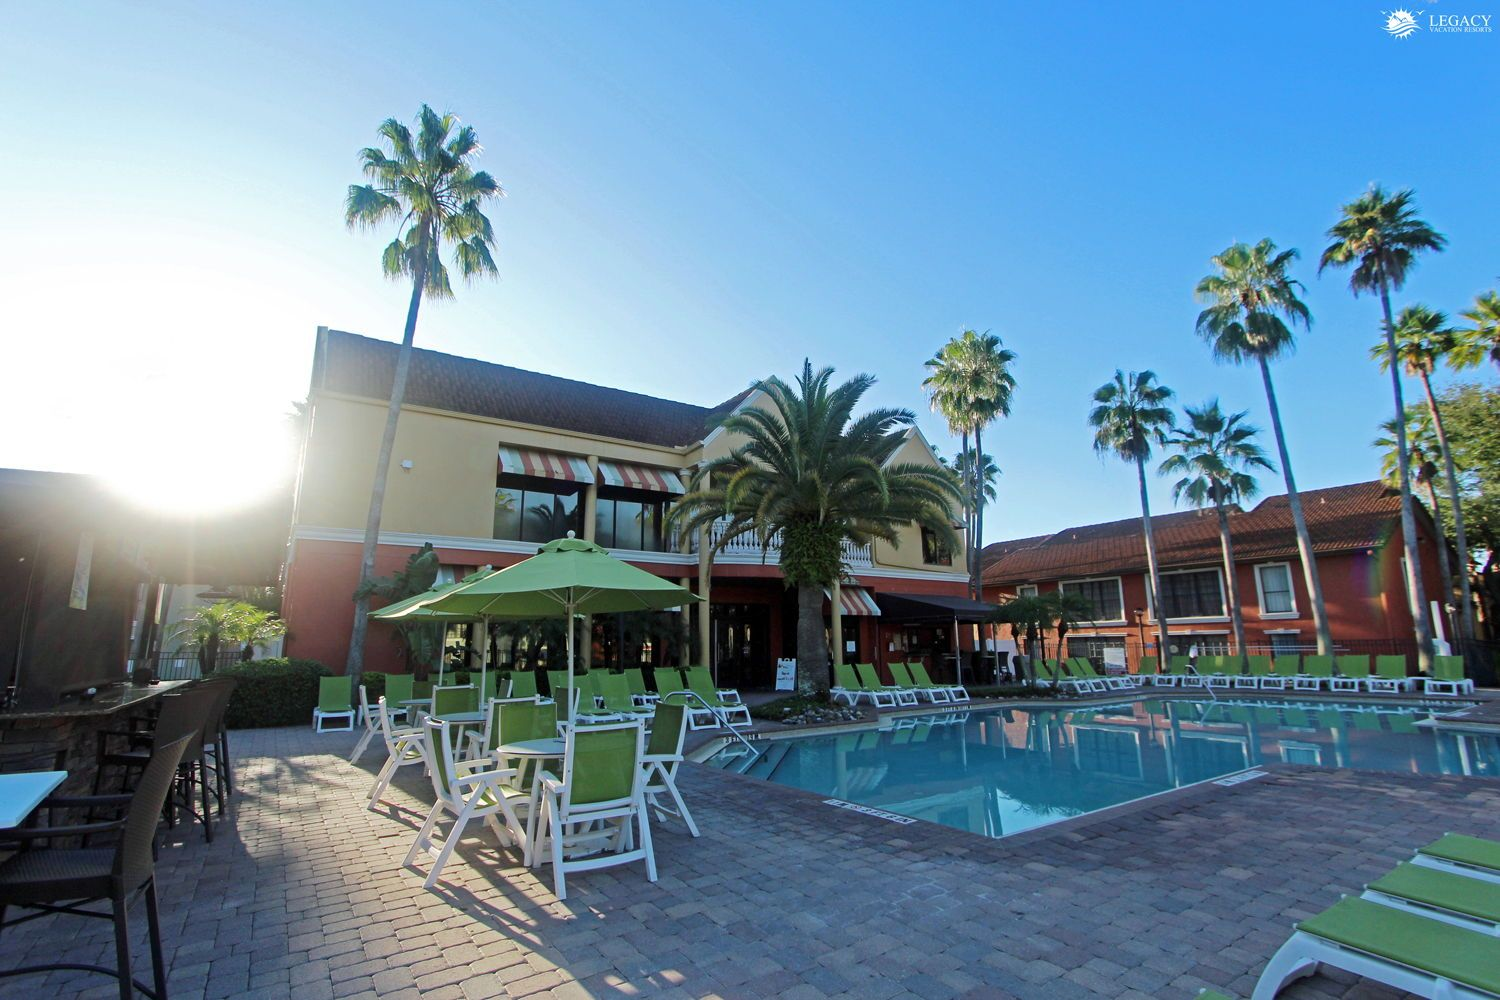 Seize the vacation at Legacy Vacation Resorts Orlando